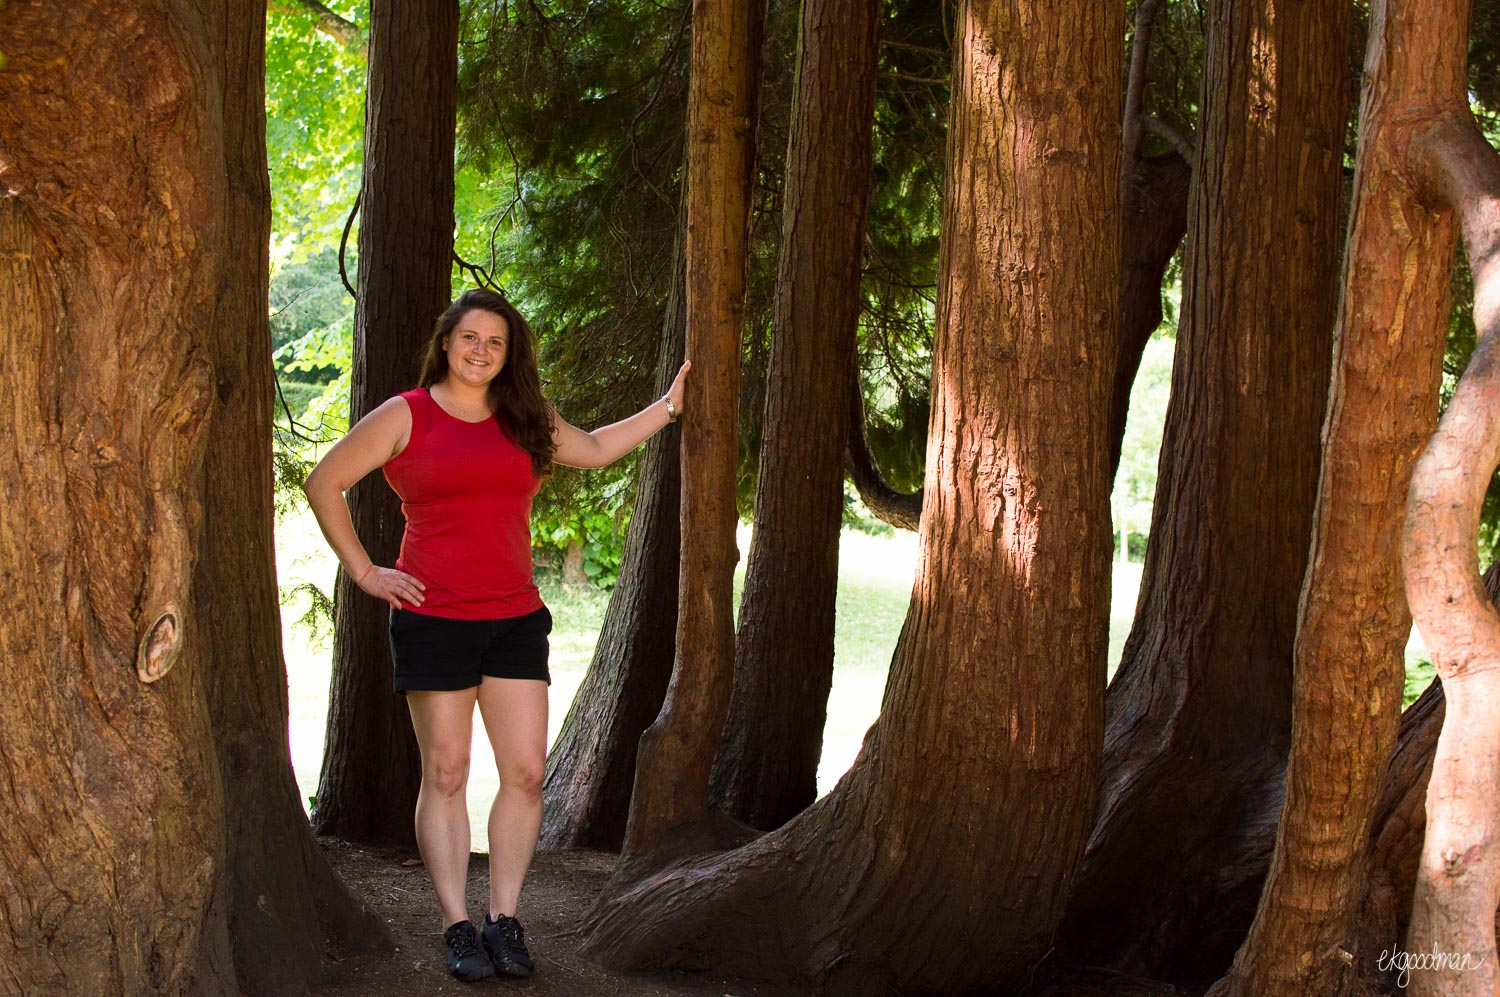 Hey, that's me! Among some really cool old cedar trunks that look like they grew out of an old stump.